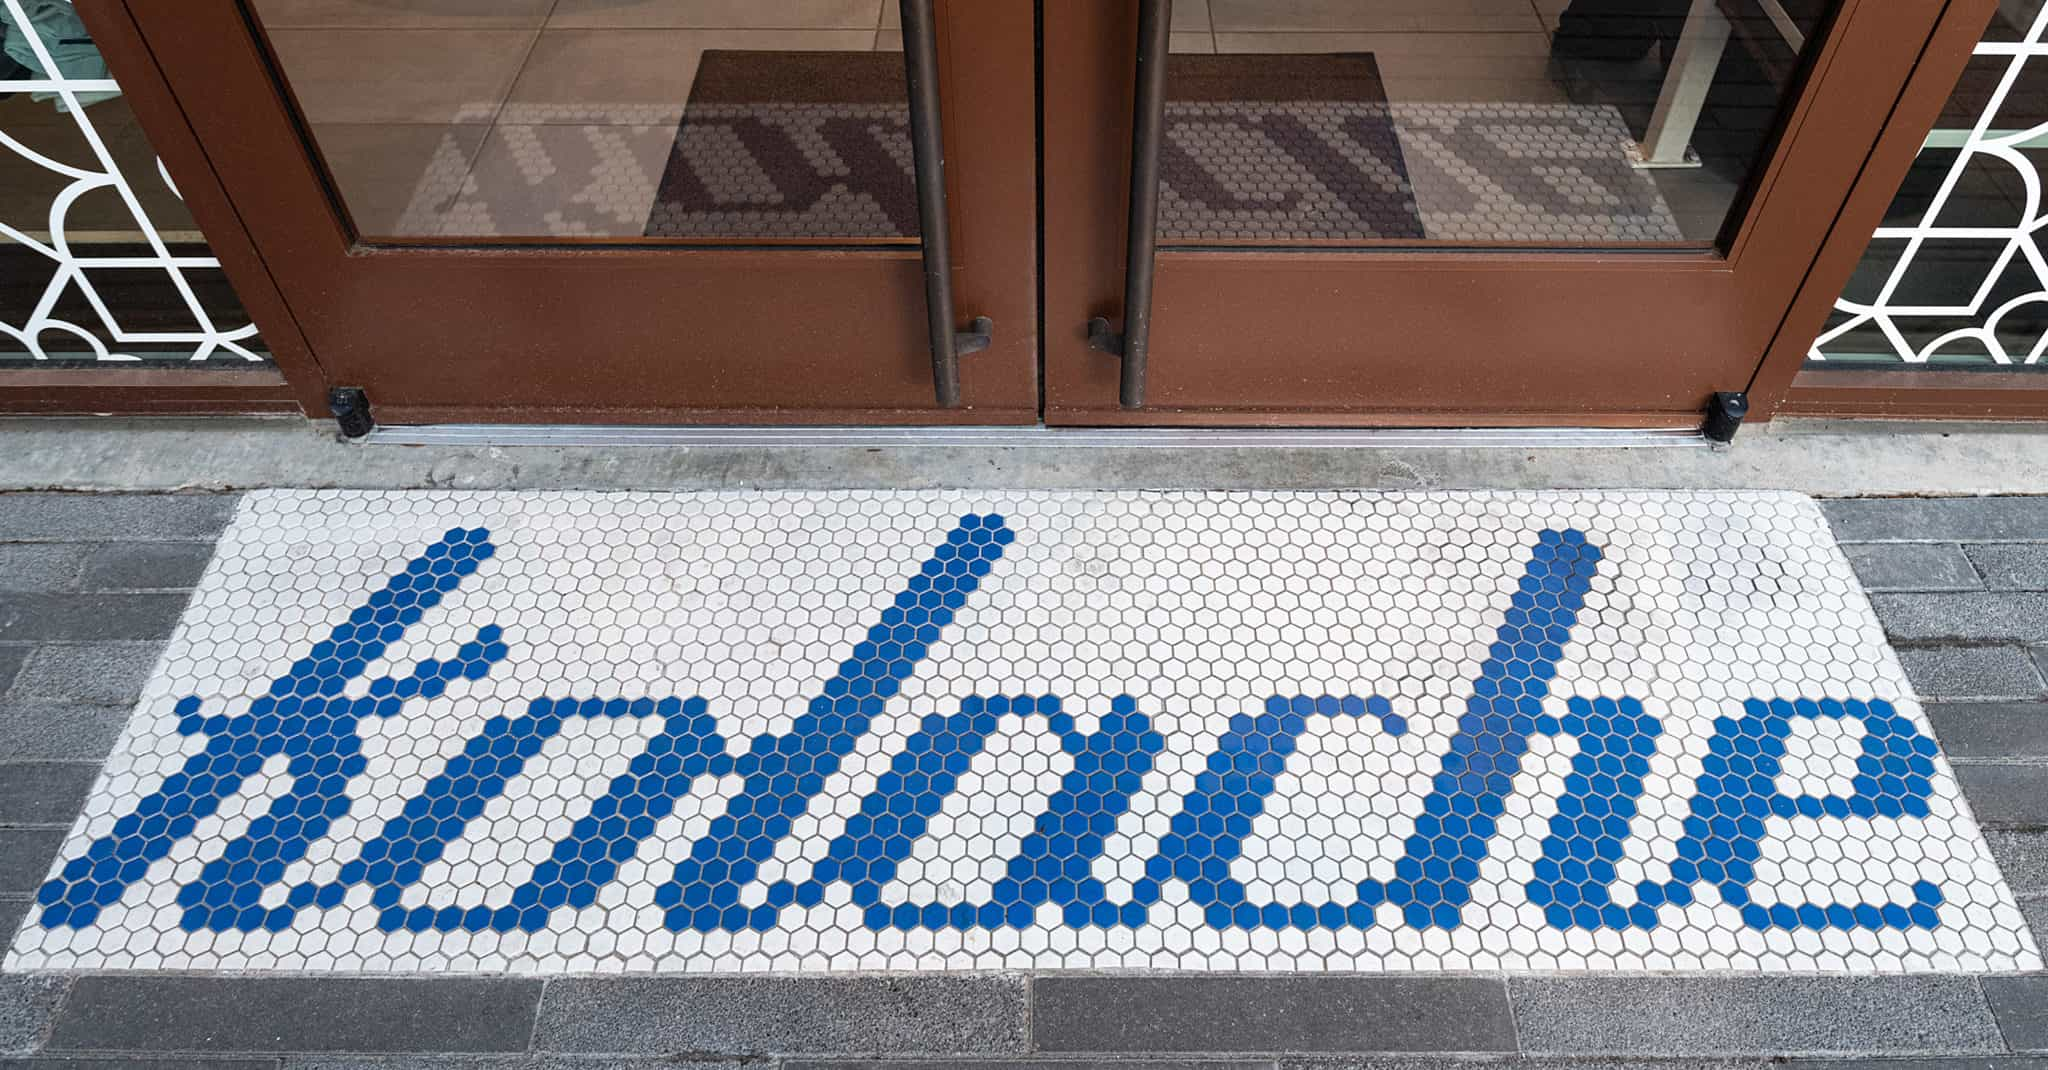 Custom Kolache Hex Tile for Kolache Shoppe Heights | Designed by Field of Study: A branding and graphic design consultancy | Houston TX | Jennifer Blanco & John Earles